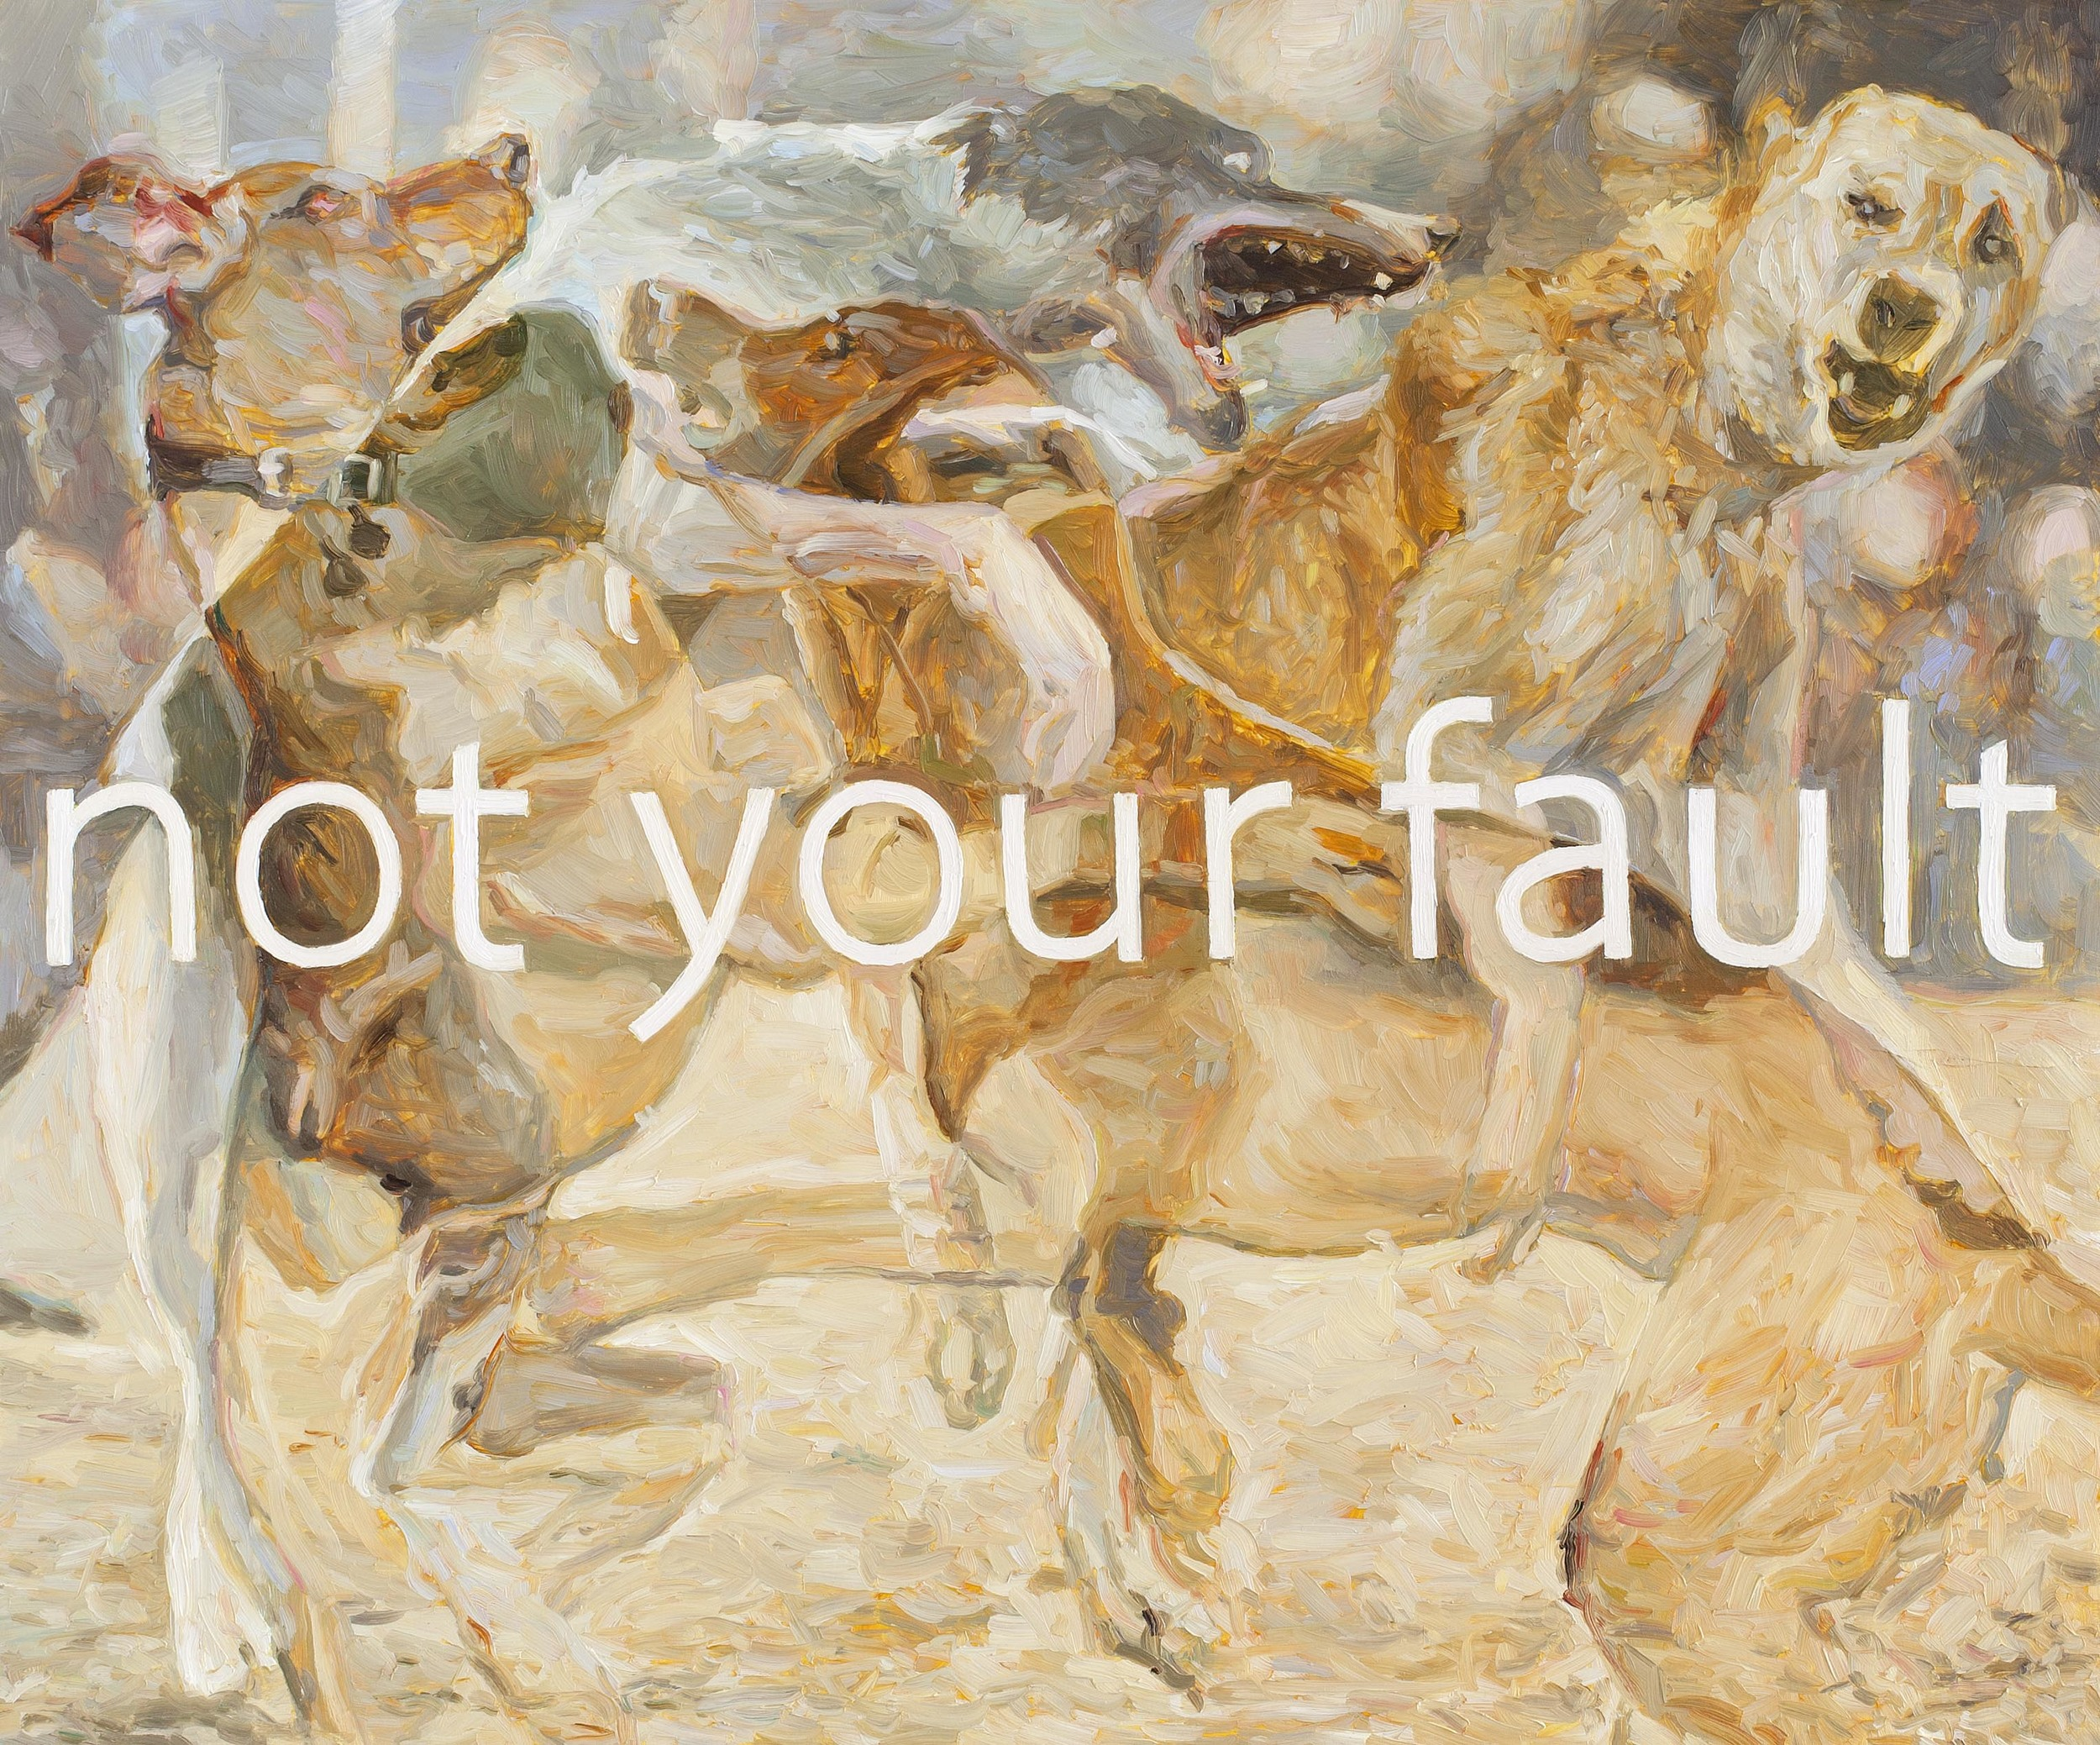 Not Your Fault, oil on board, 50 x 60 cm, 2013.